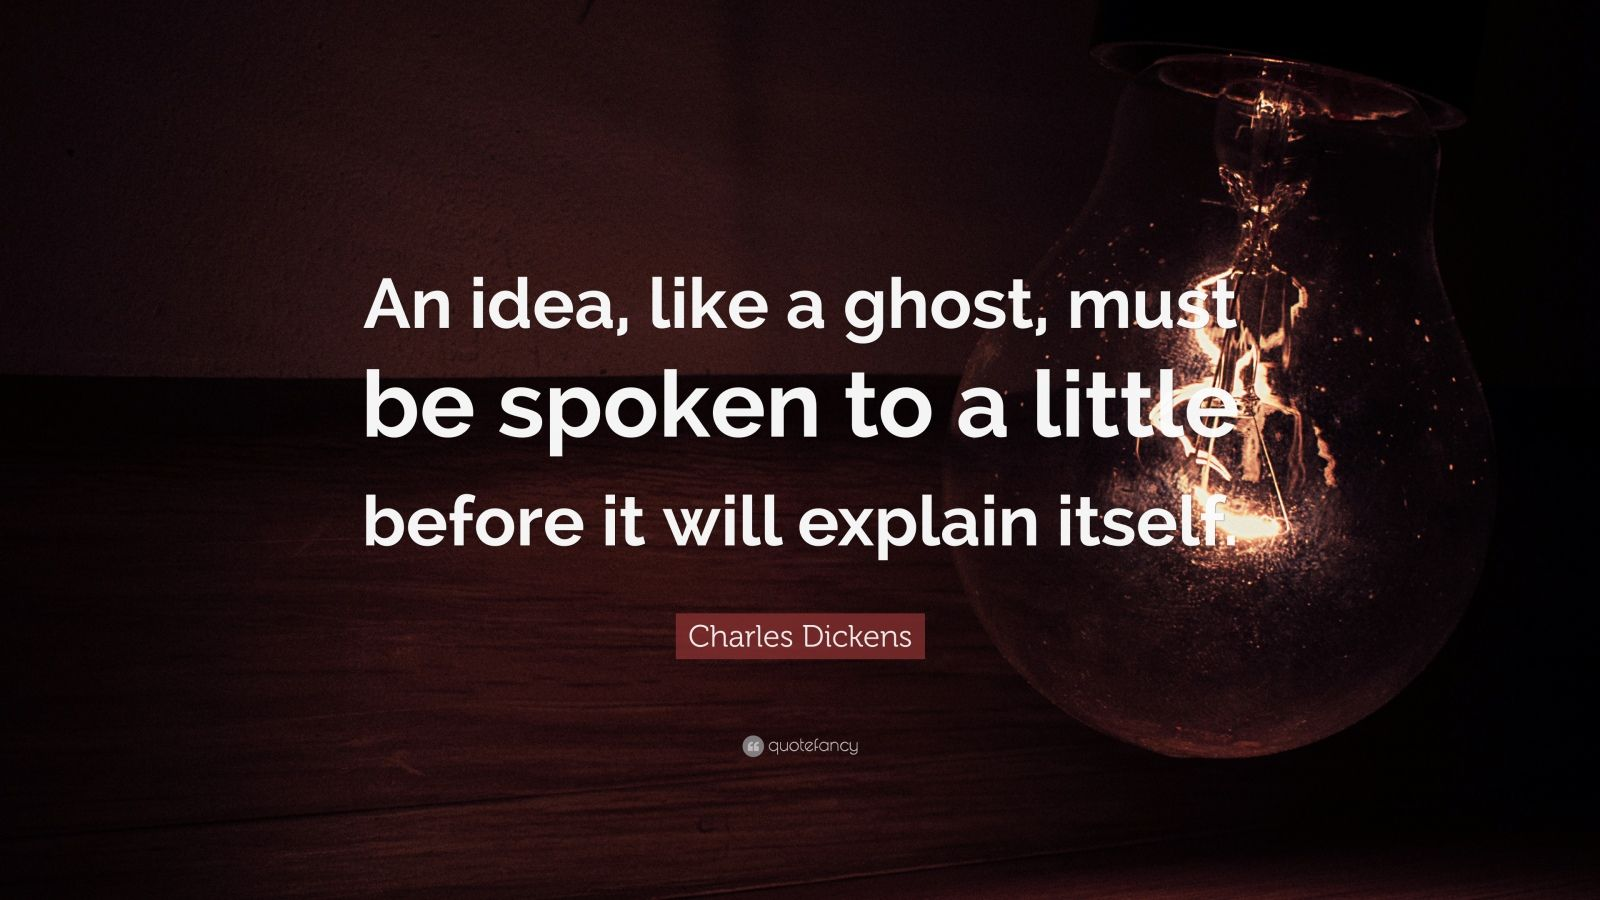 """Charles Dickens Quote: """"An idea, like a ghost, must be spoken to a little before it will explain itself."""""""